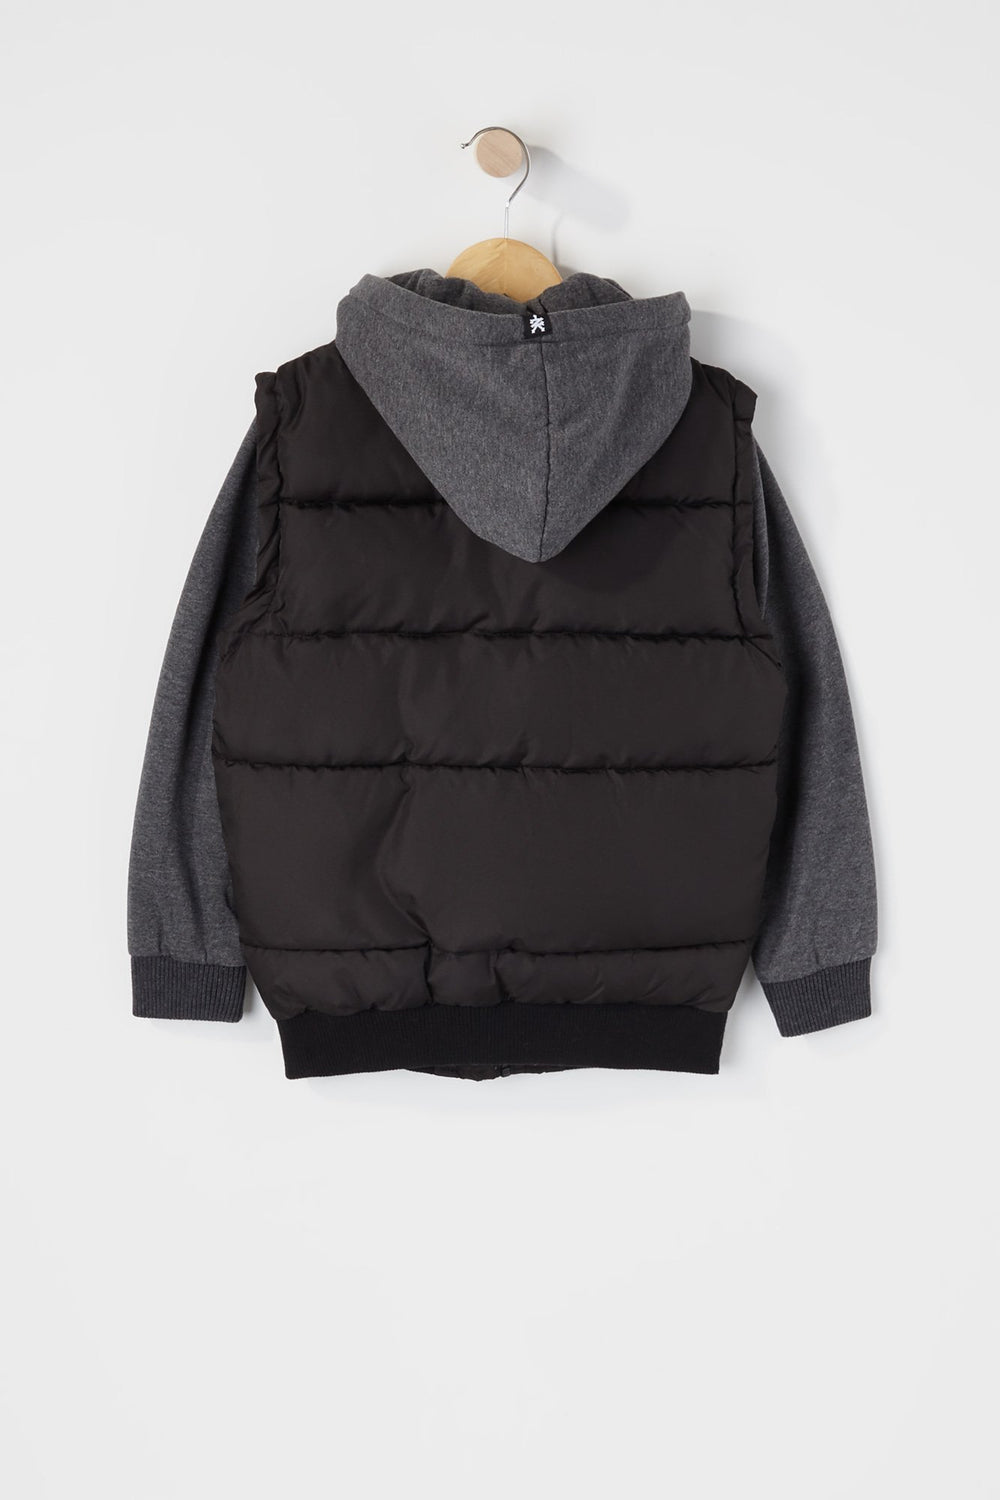 Zoo York Boys Hooded Puffer Vest Black